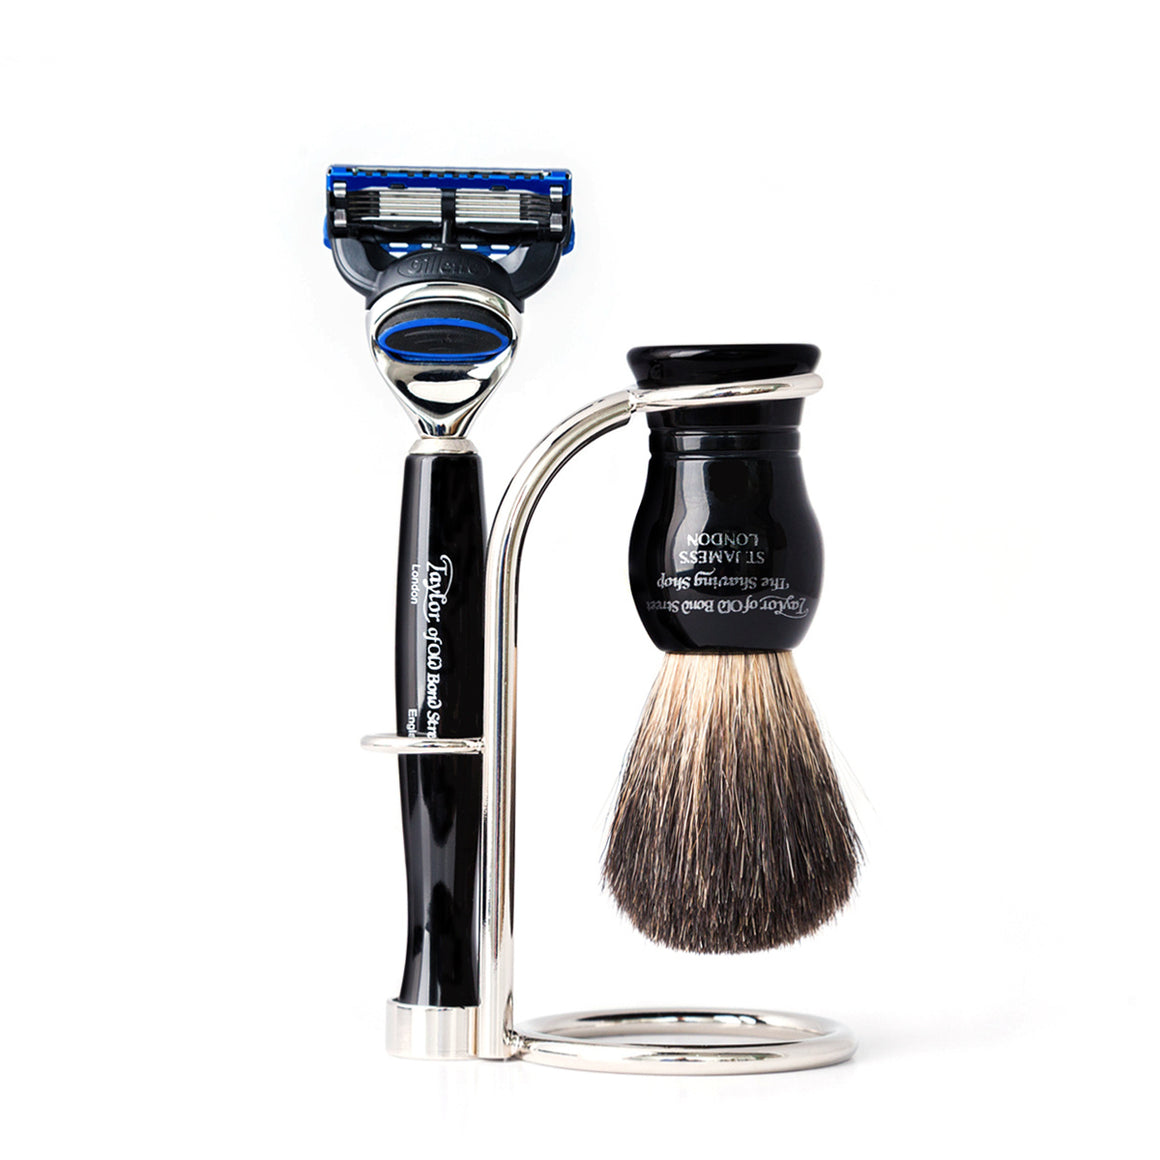 Taylor of Old Bond Street No. 74 Fusion Shaving Set in Black